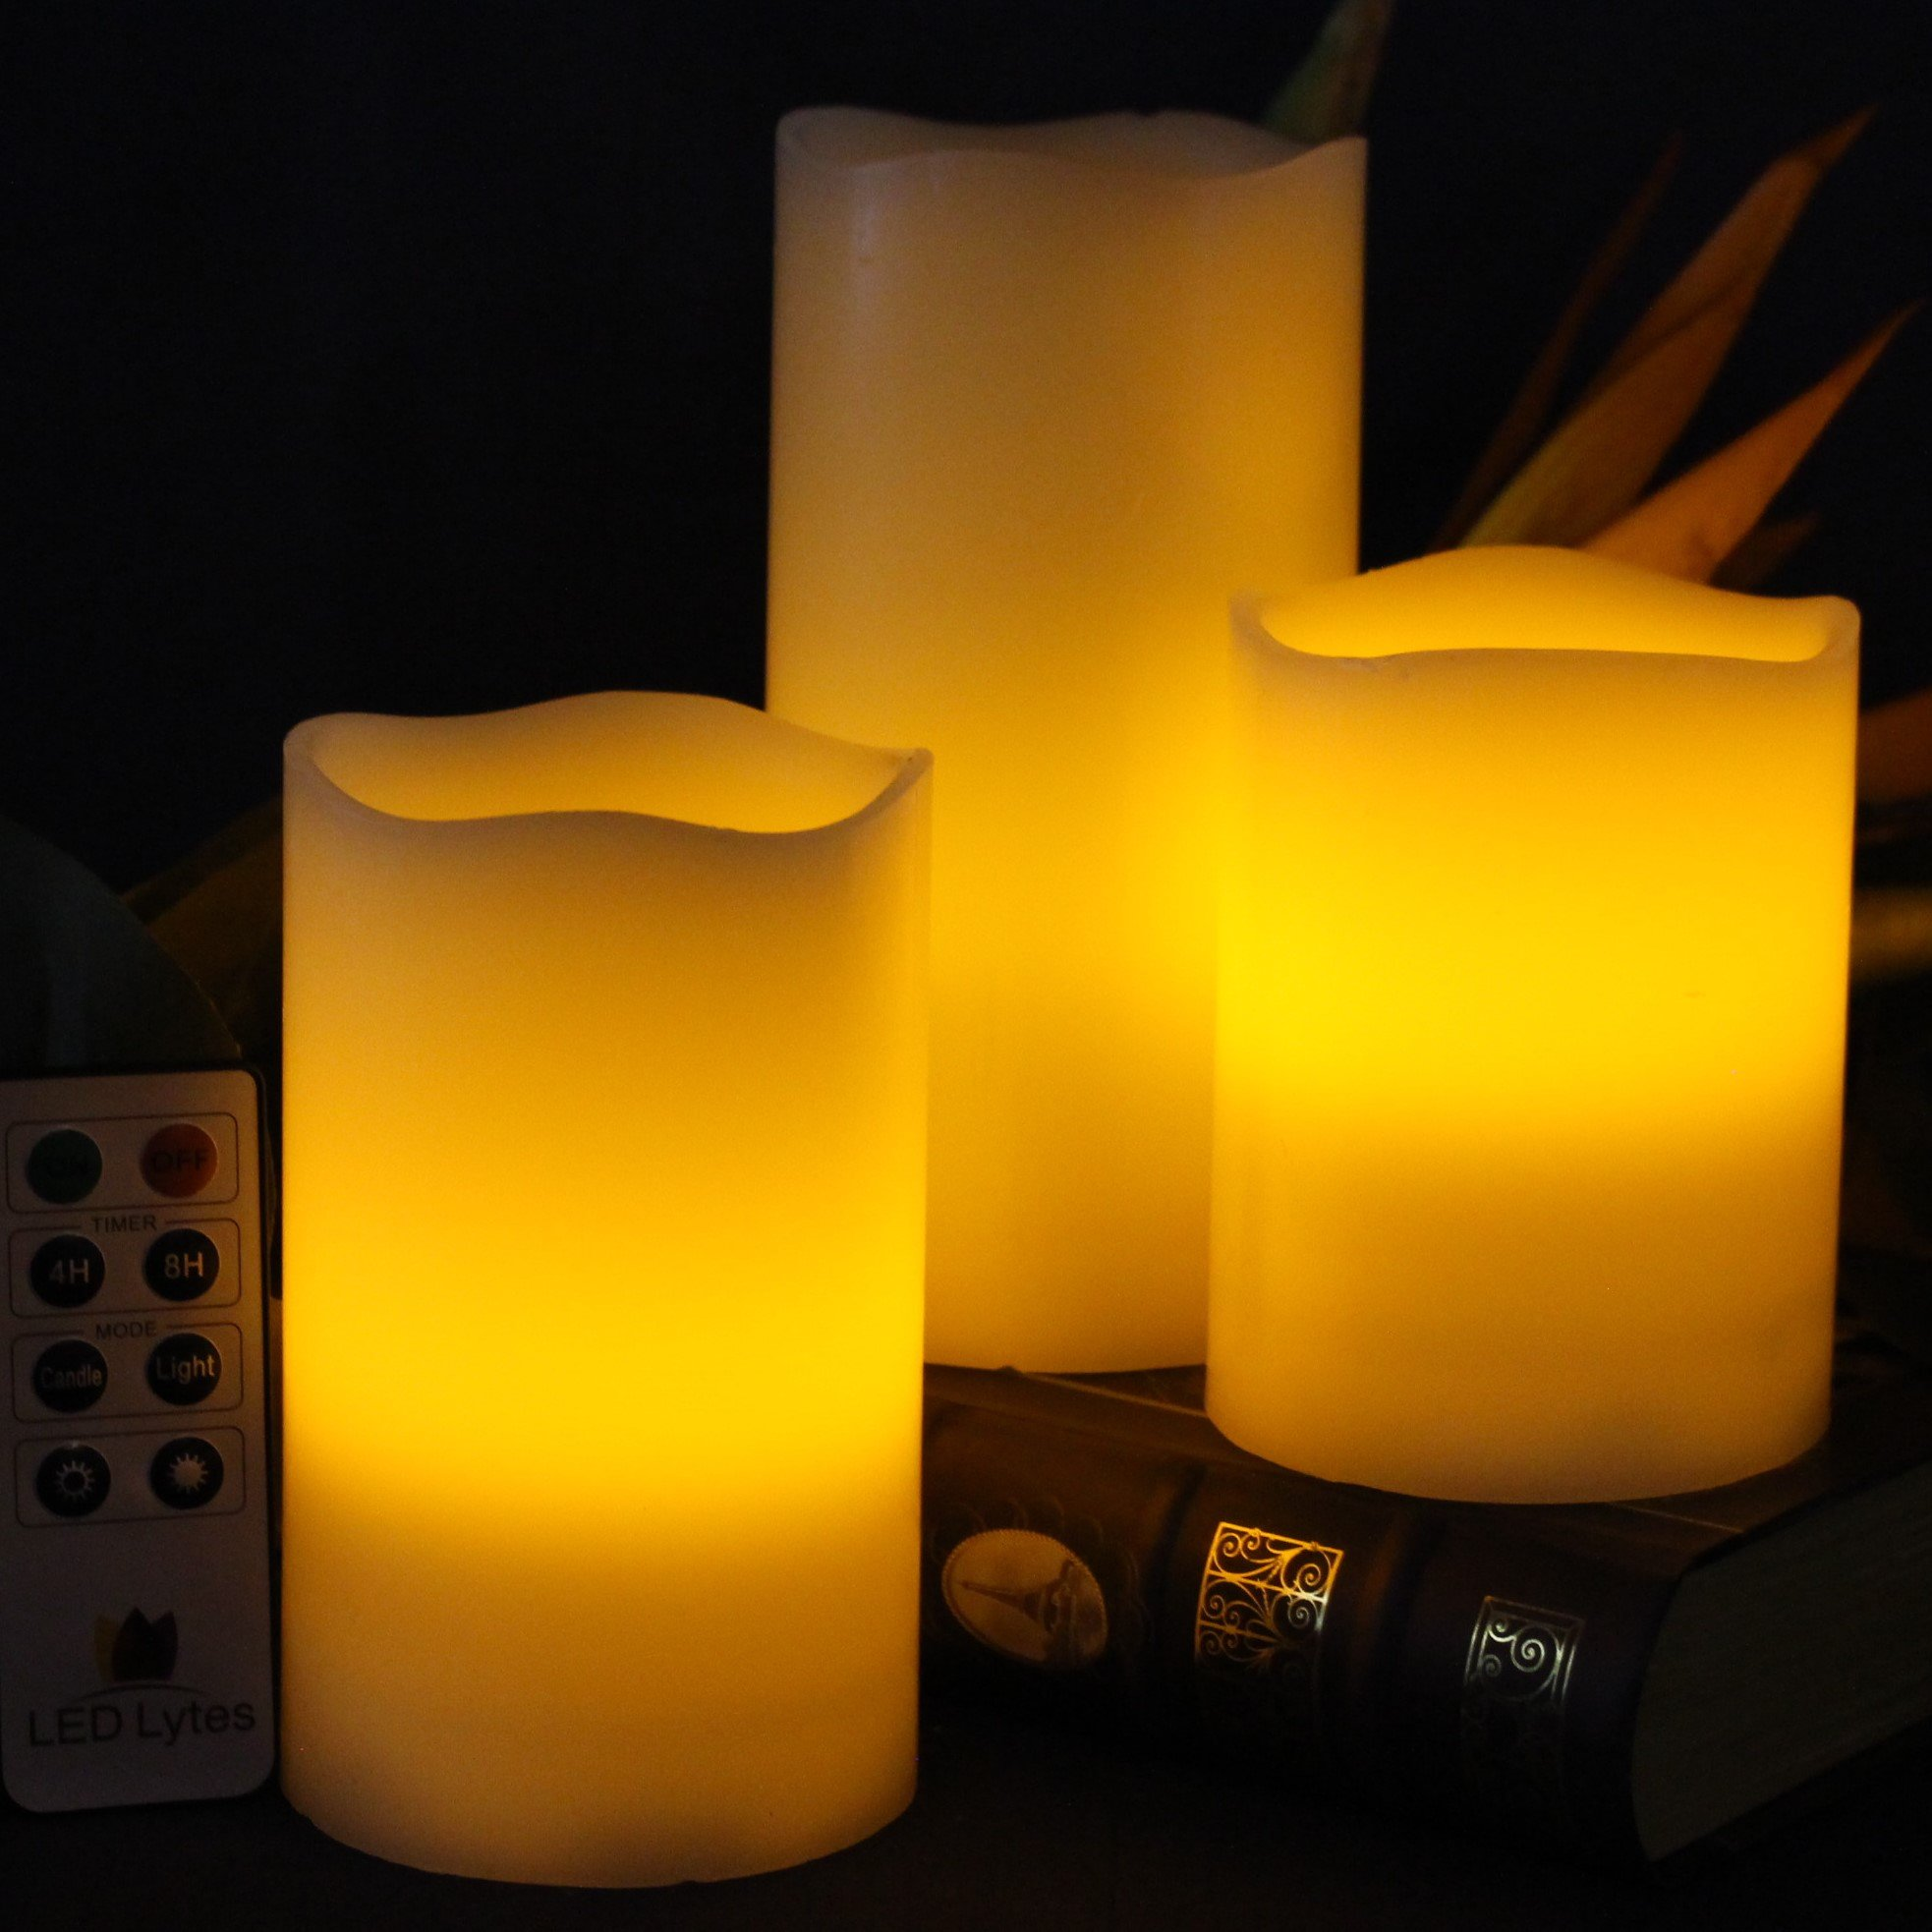 LED Lytes Flickering Flameless Candles - Set of 3 Ivory Wax Flickering Amber Yellow Flame, Auto-Off Timer Remote Control Fake Battery Operated Candles by LED Lytes (Image #3)